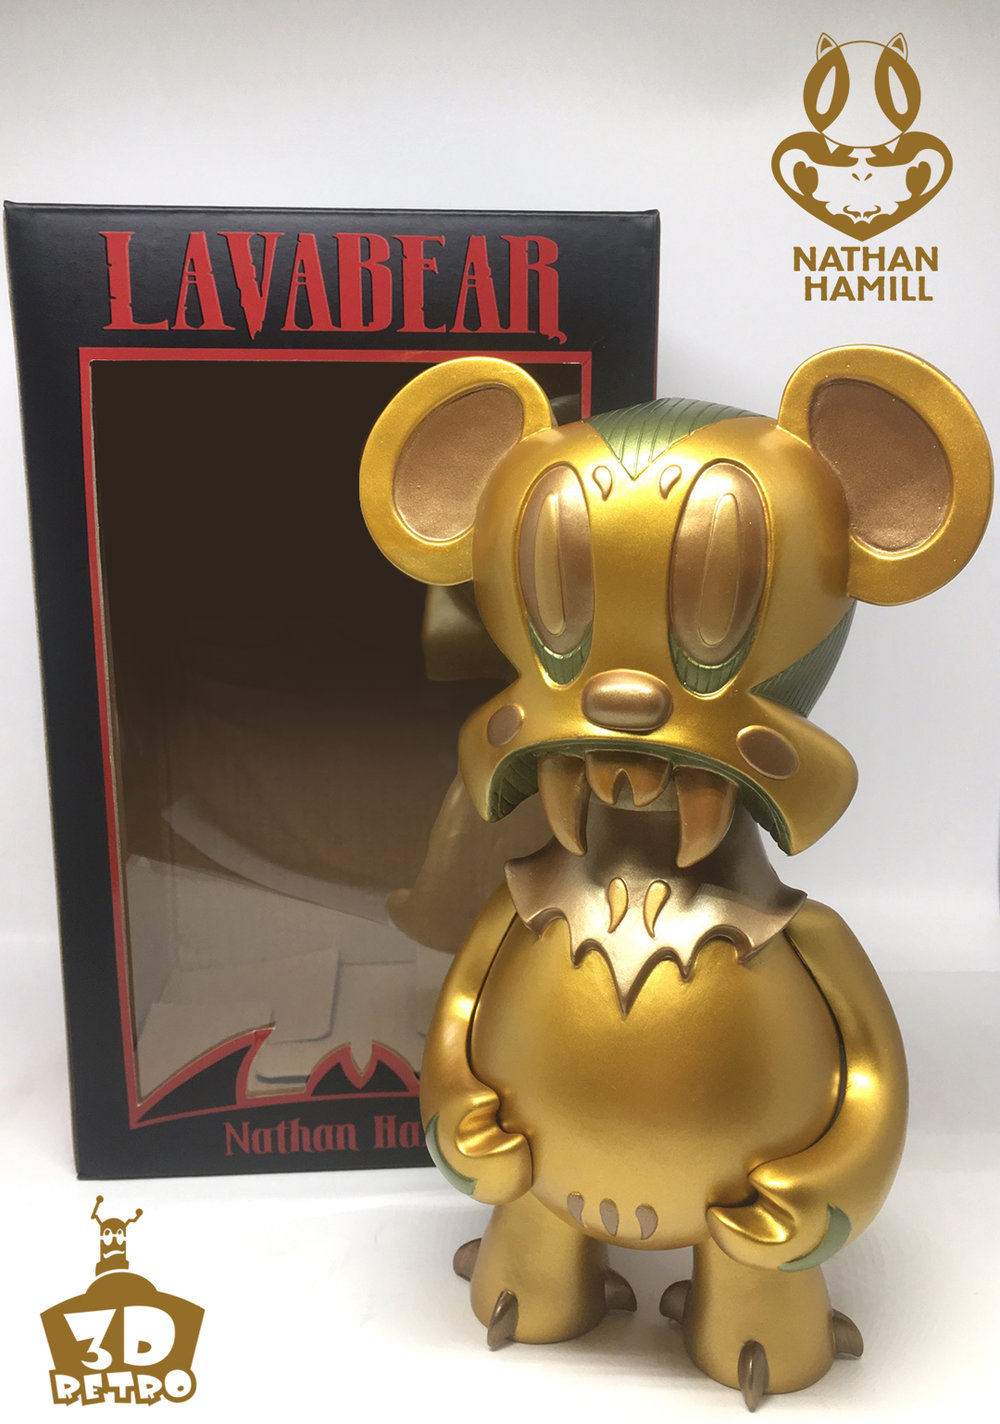 Lavabear: Bronze Ed.  Vinyl  8 inches  Limited to 75 pieces